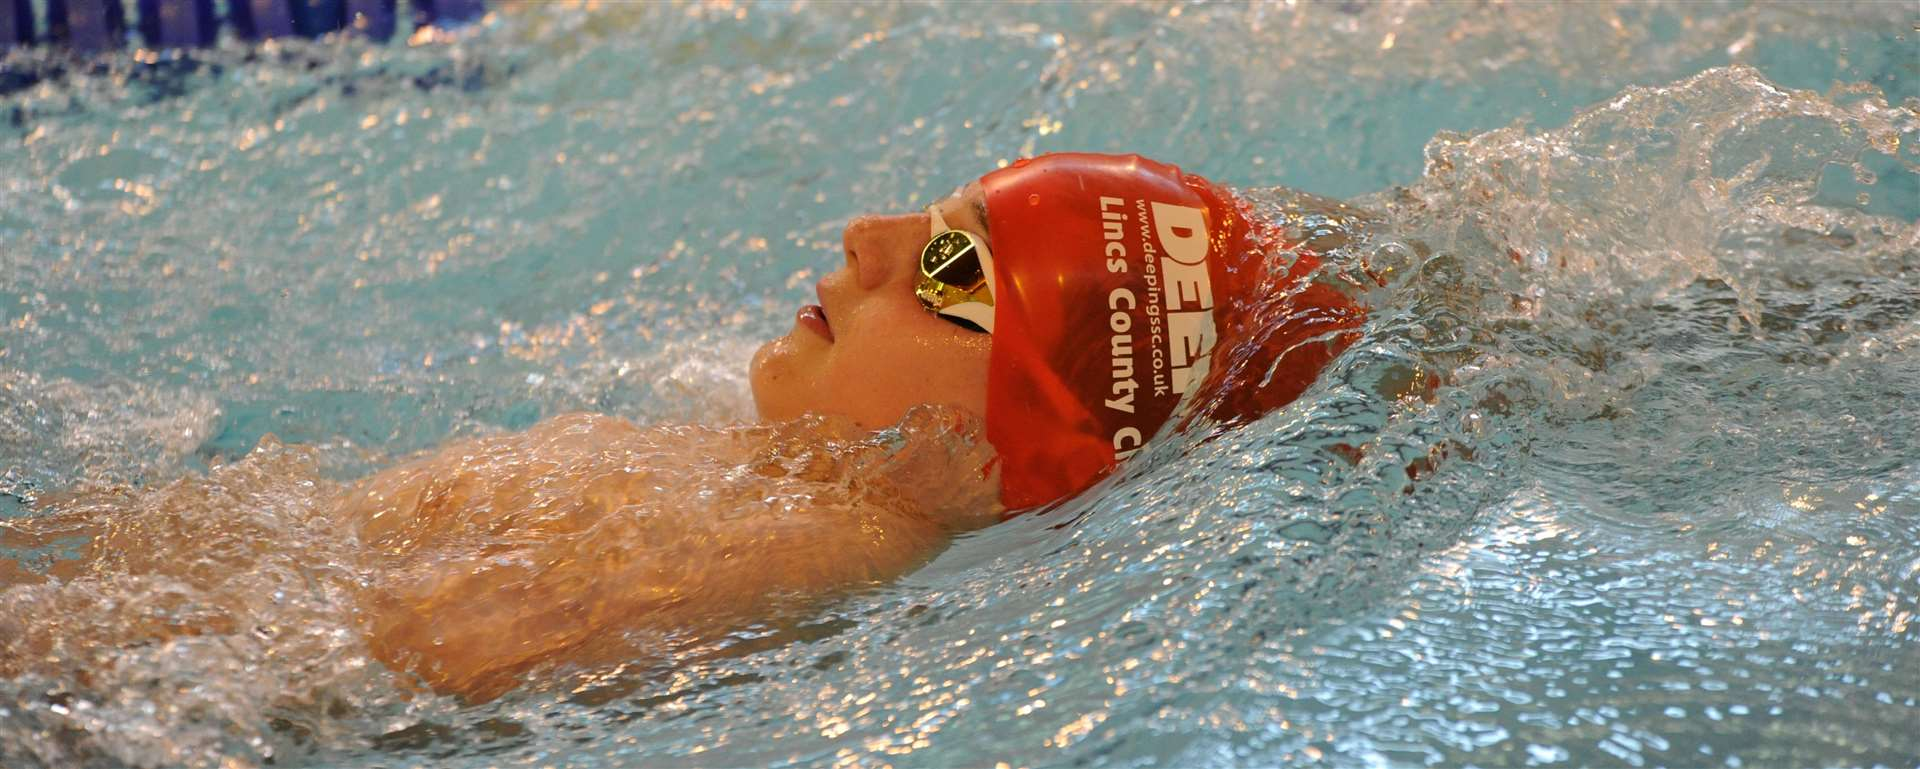 Zack Treharne won three golds at the Fenland Open Meet, swimming three county qualifying times. (2423353)